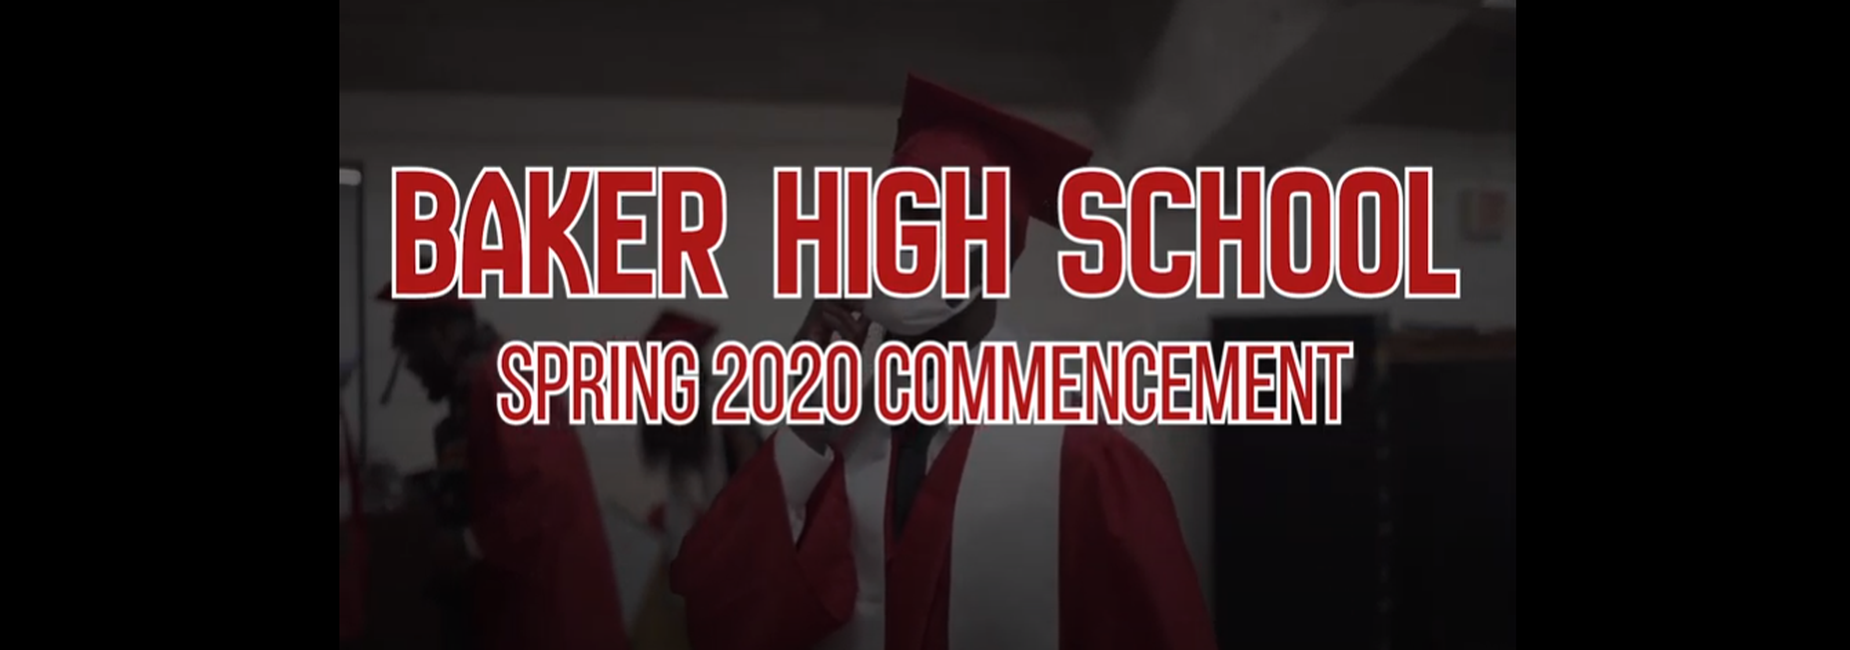 a graphic that says Baker High School Spring 2020 Commencement with link to the video